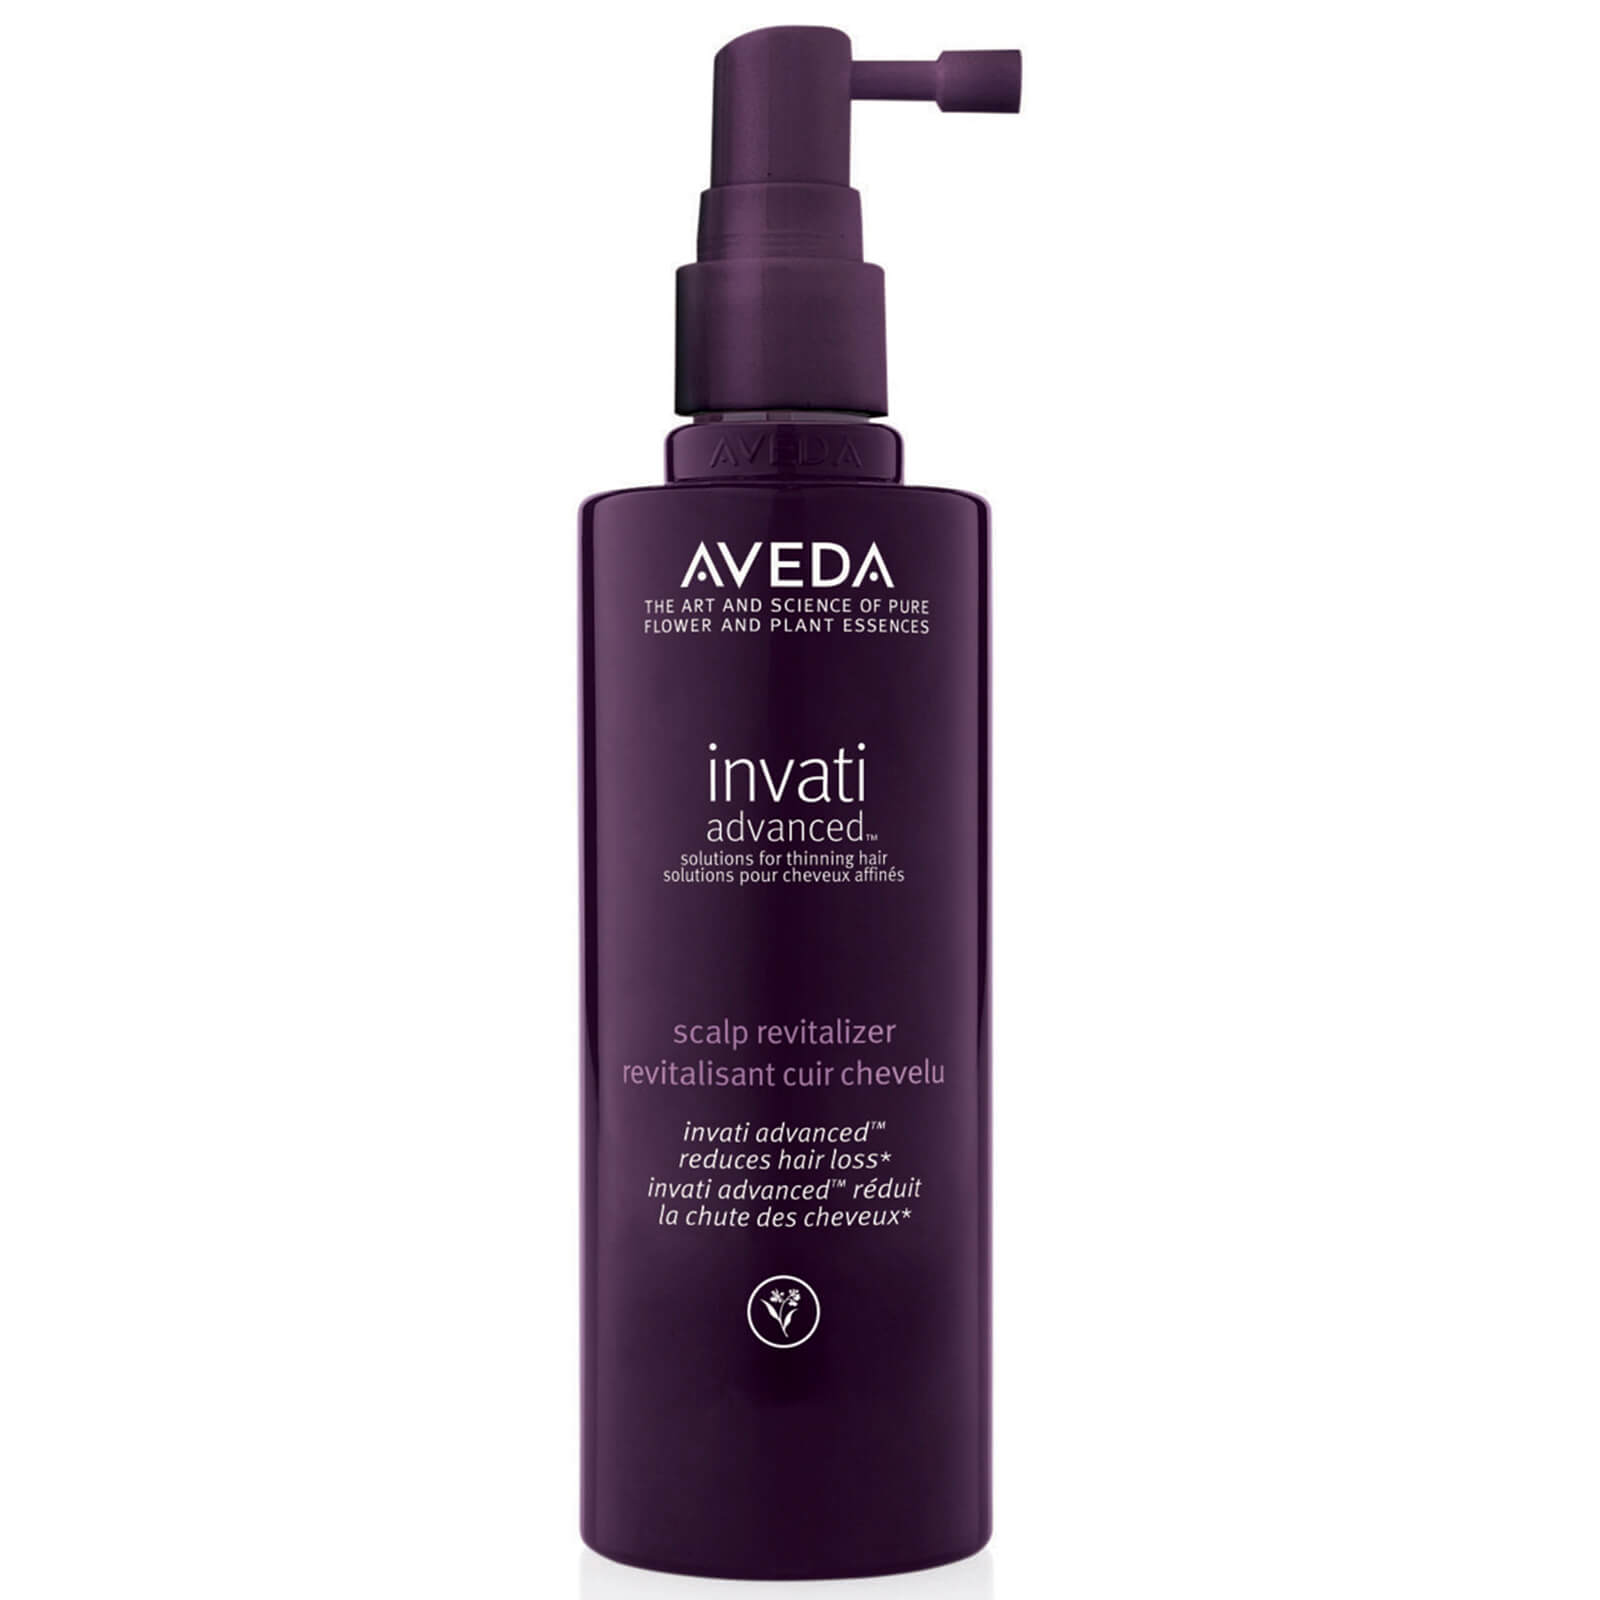 Aveda vegan revitalizer scalp